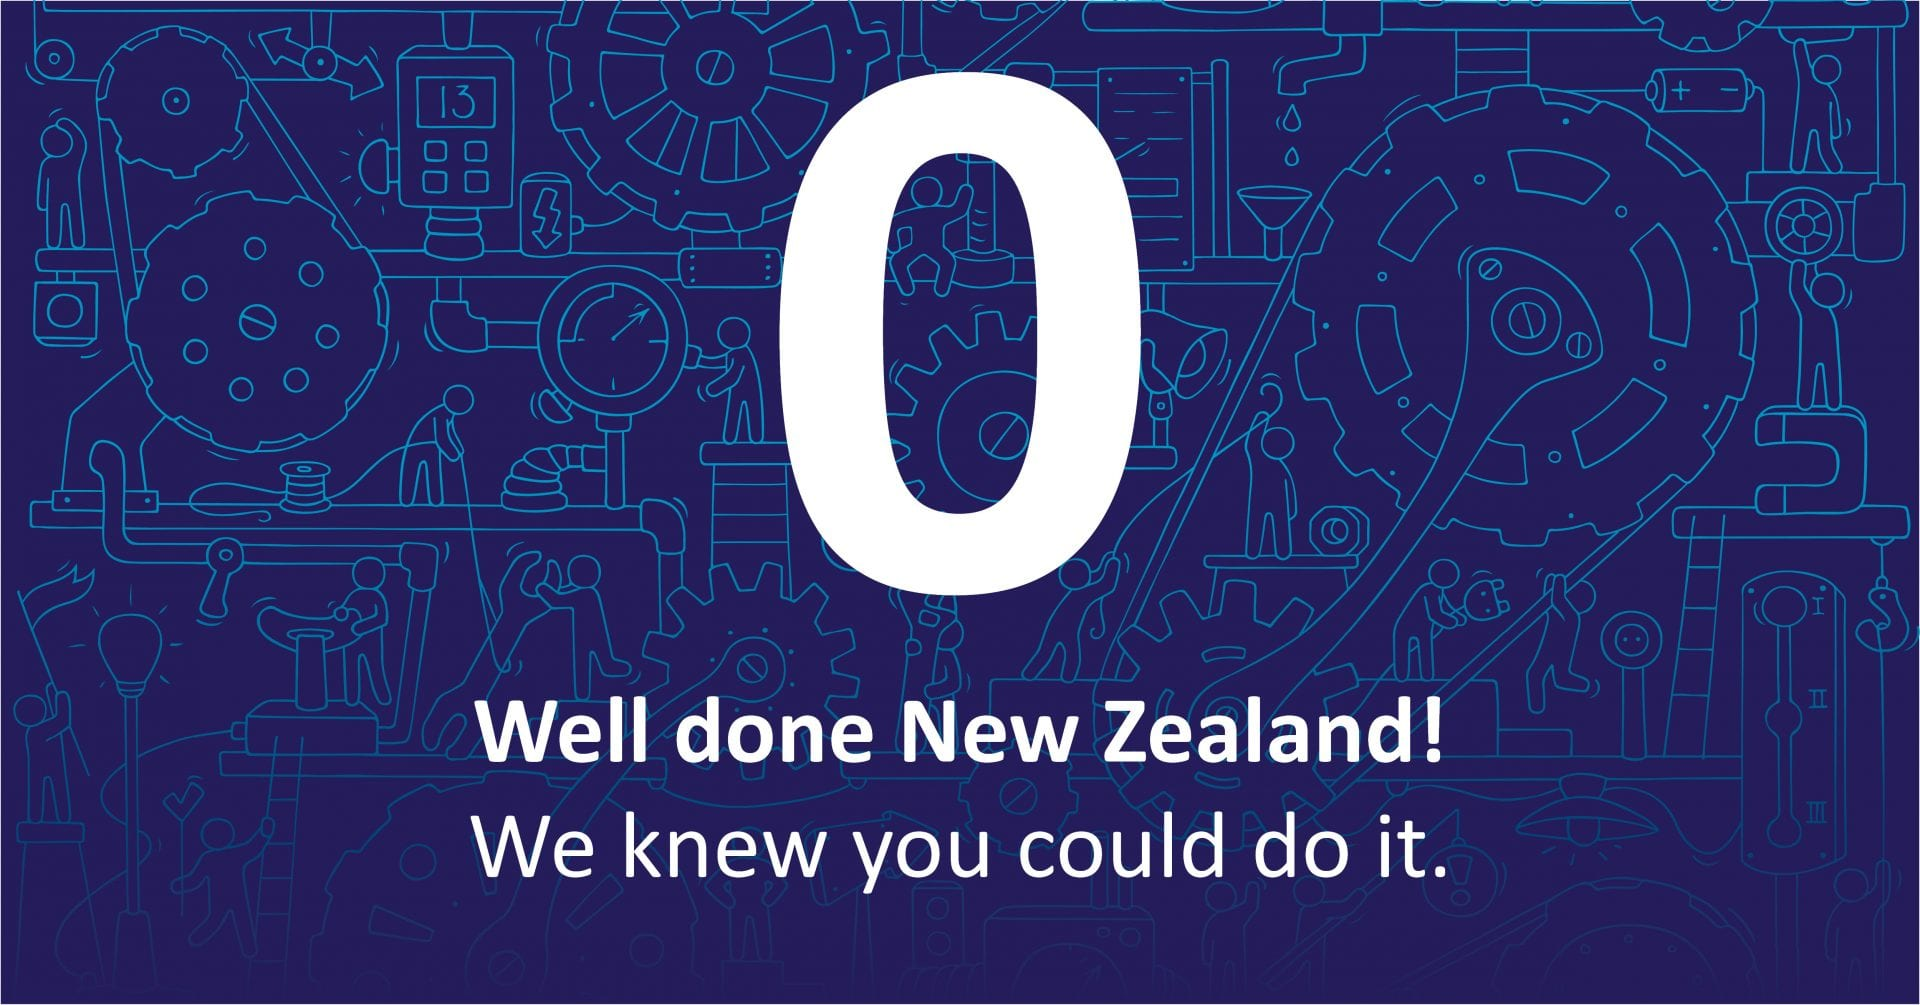 No active cases of COVID-19. Well done New Zealand! We knew you could do it!